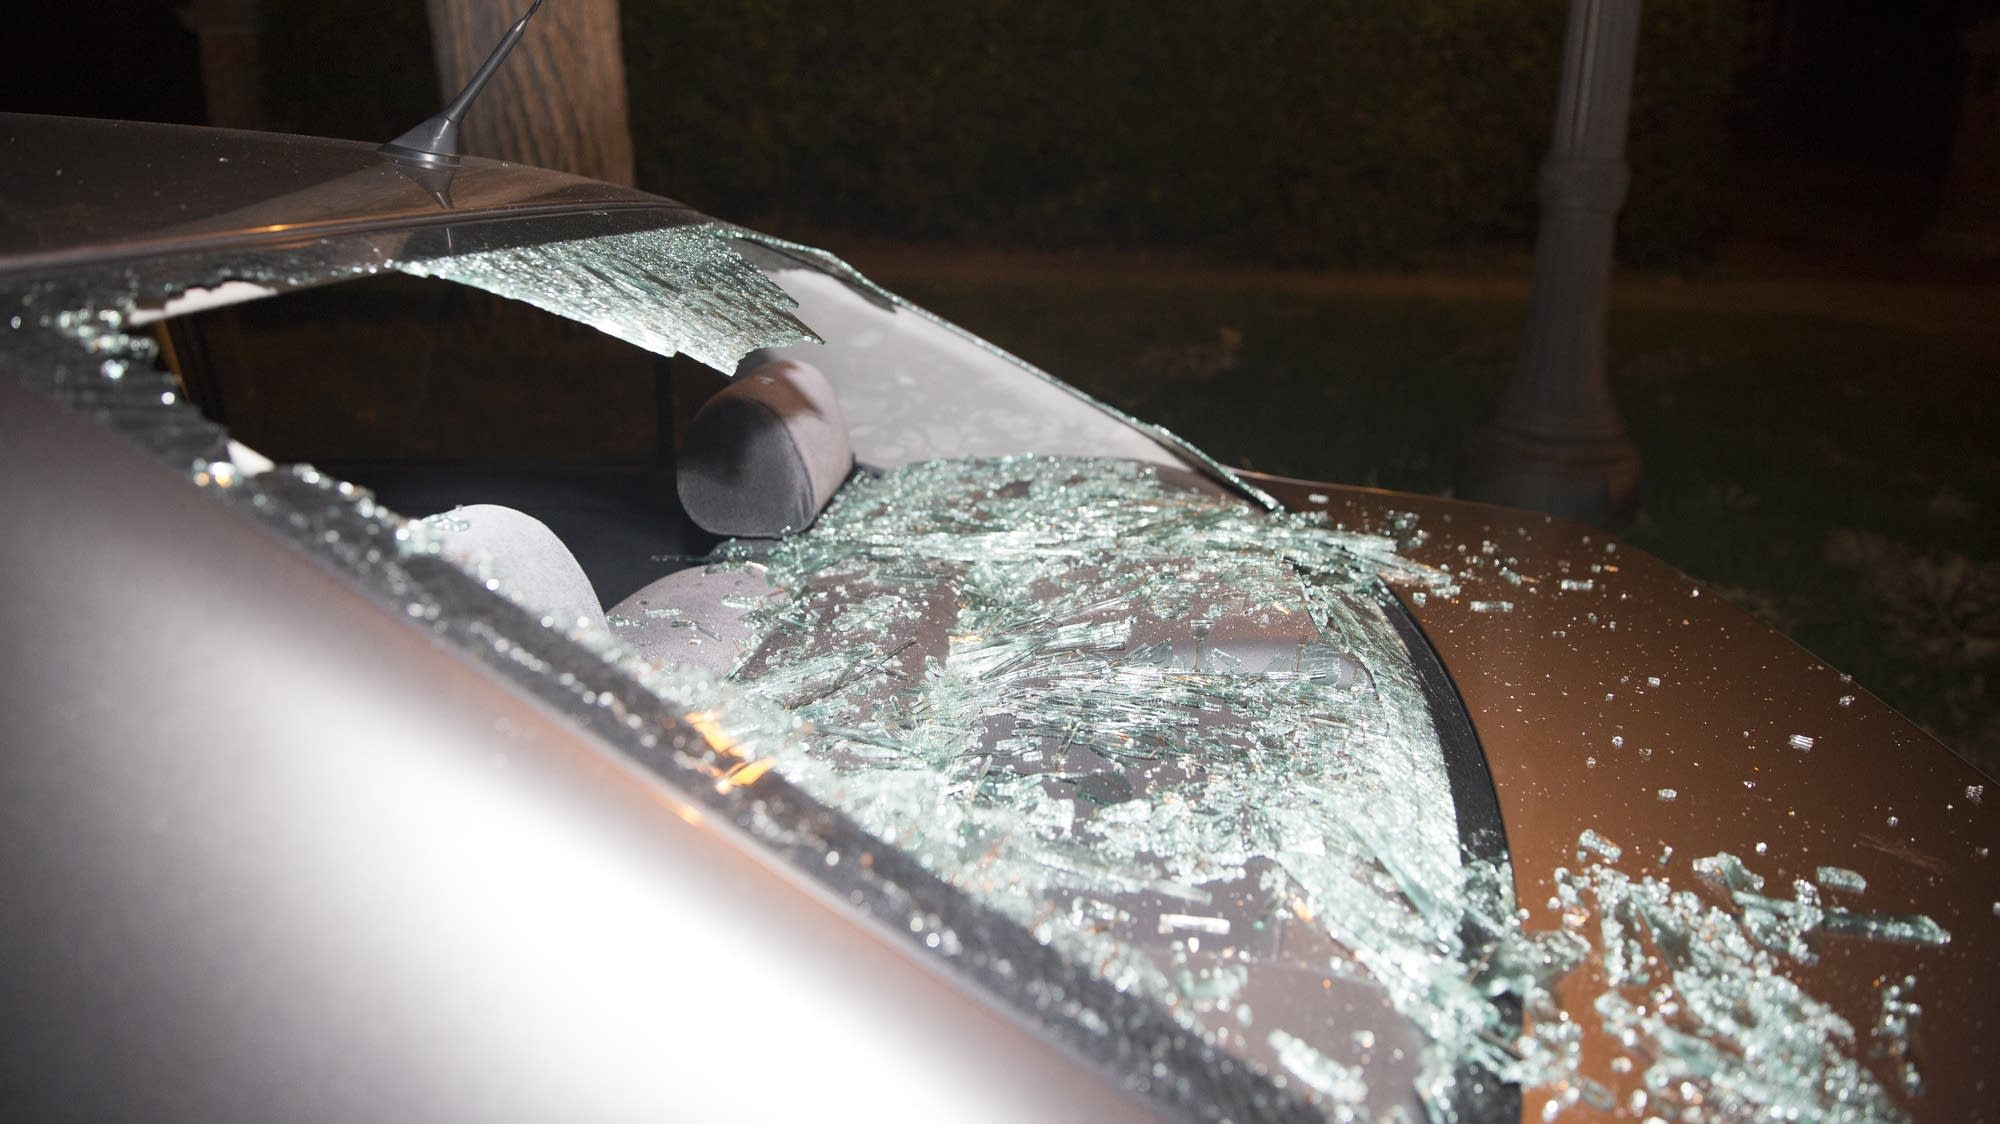 A protester smashed the window of a car.